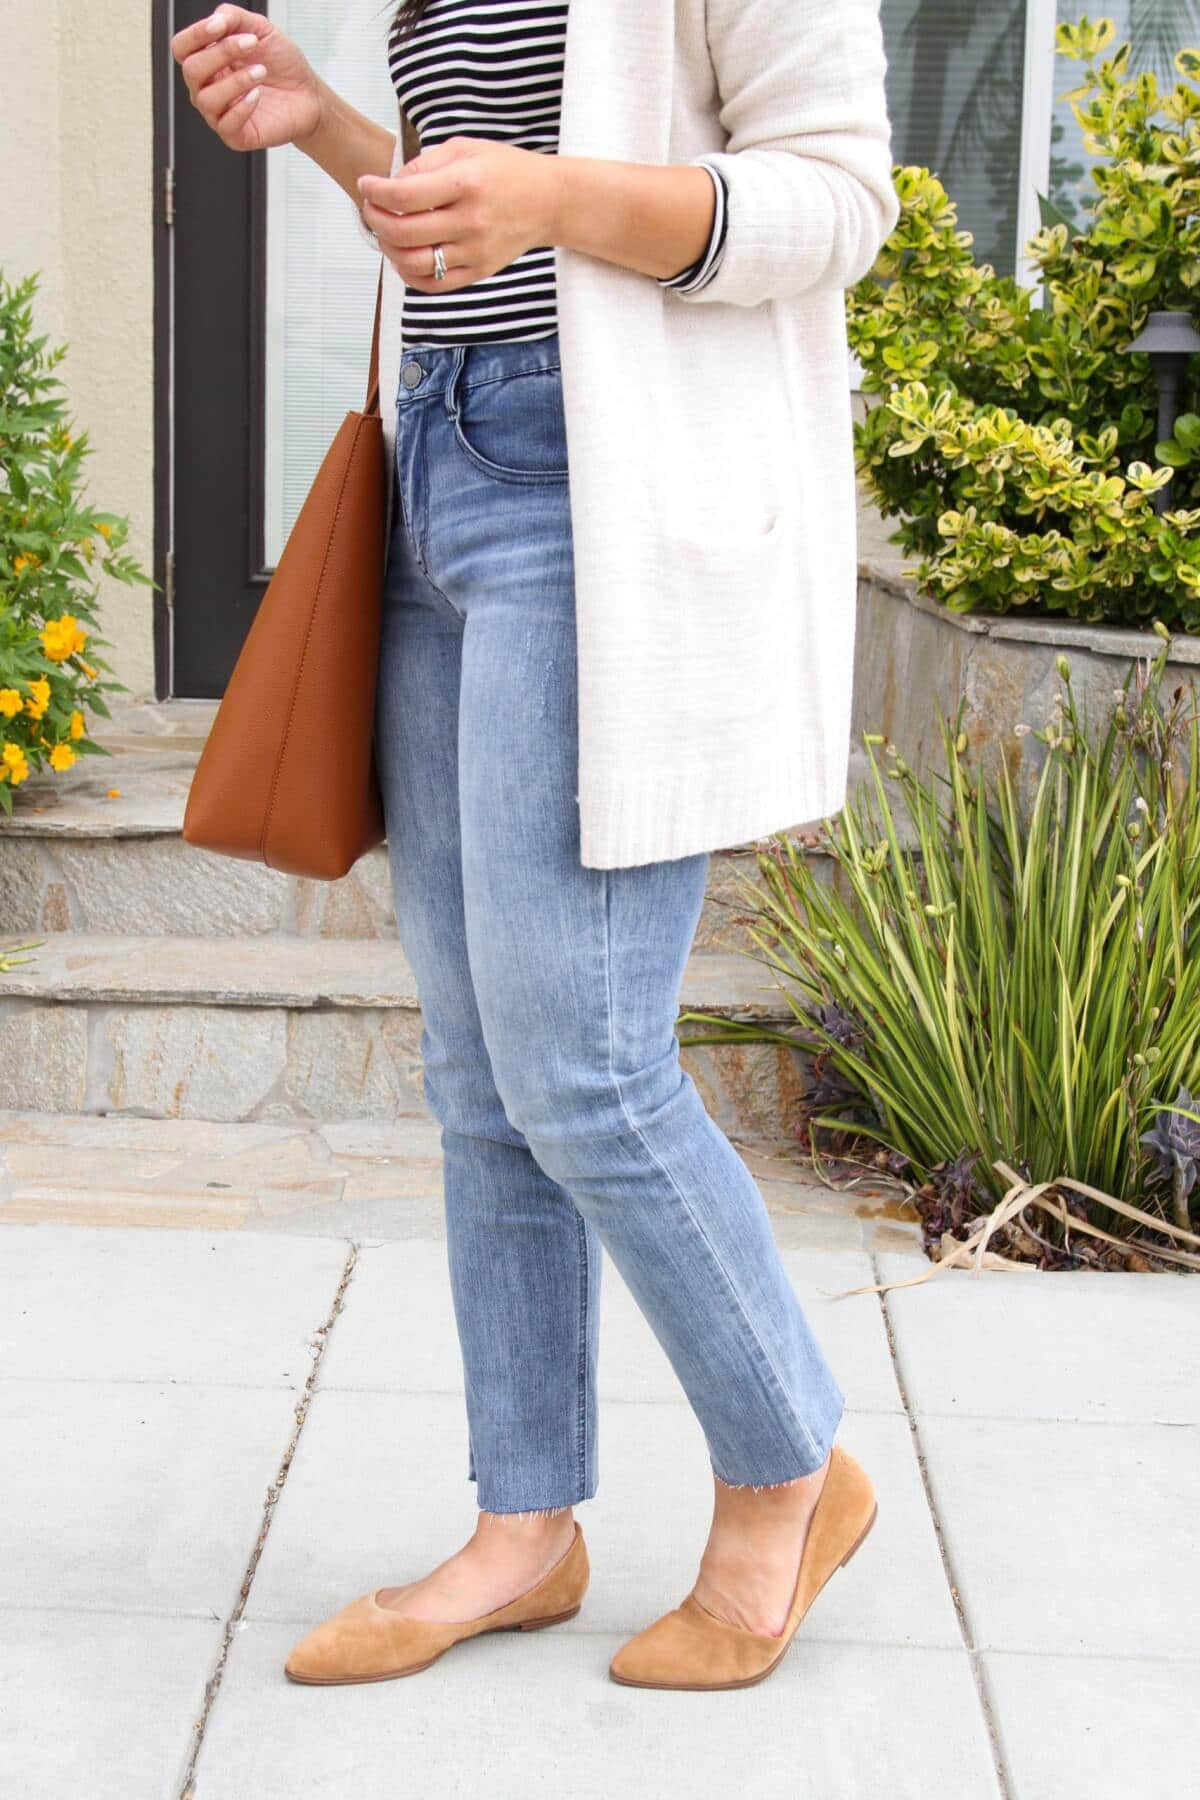 Nicer Casual Outfit: black and white striped long sleeve tee + light blue jeans + cream long cardigan + tan tote side